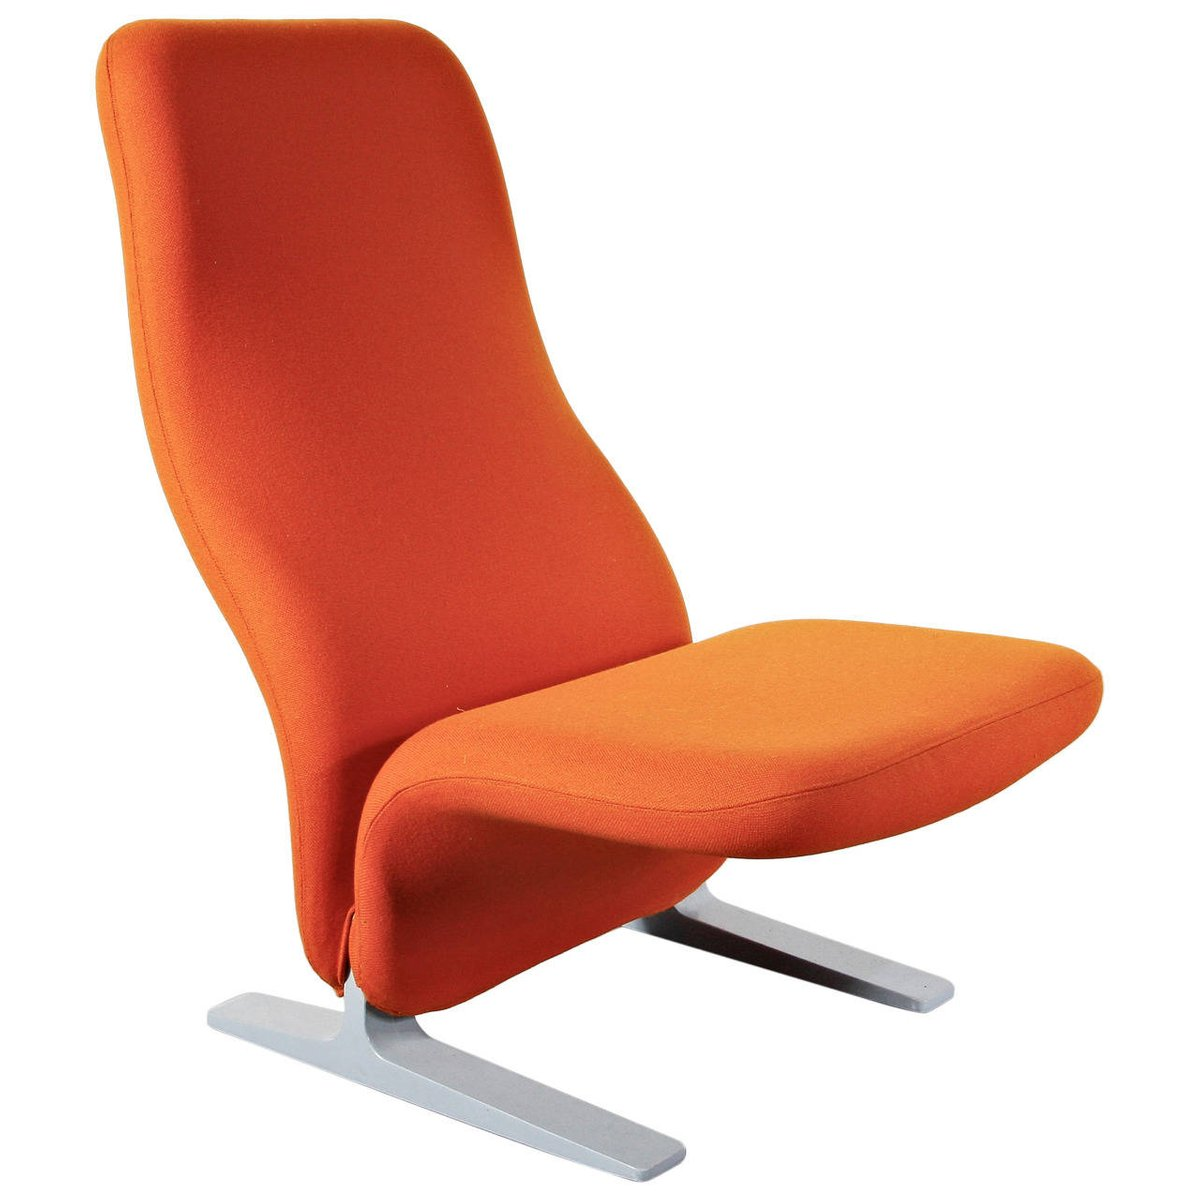 fauteuil concorde orange par pierre paulin pour artifort 1960 en vente sur pamono. Black Bedroom Furniture Sets. Home Design Ideas